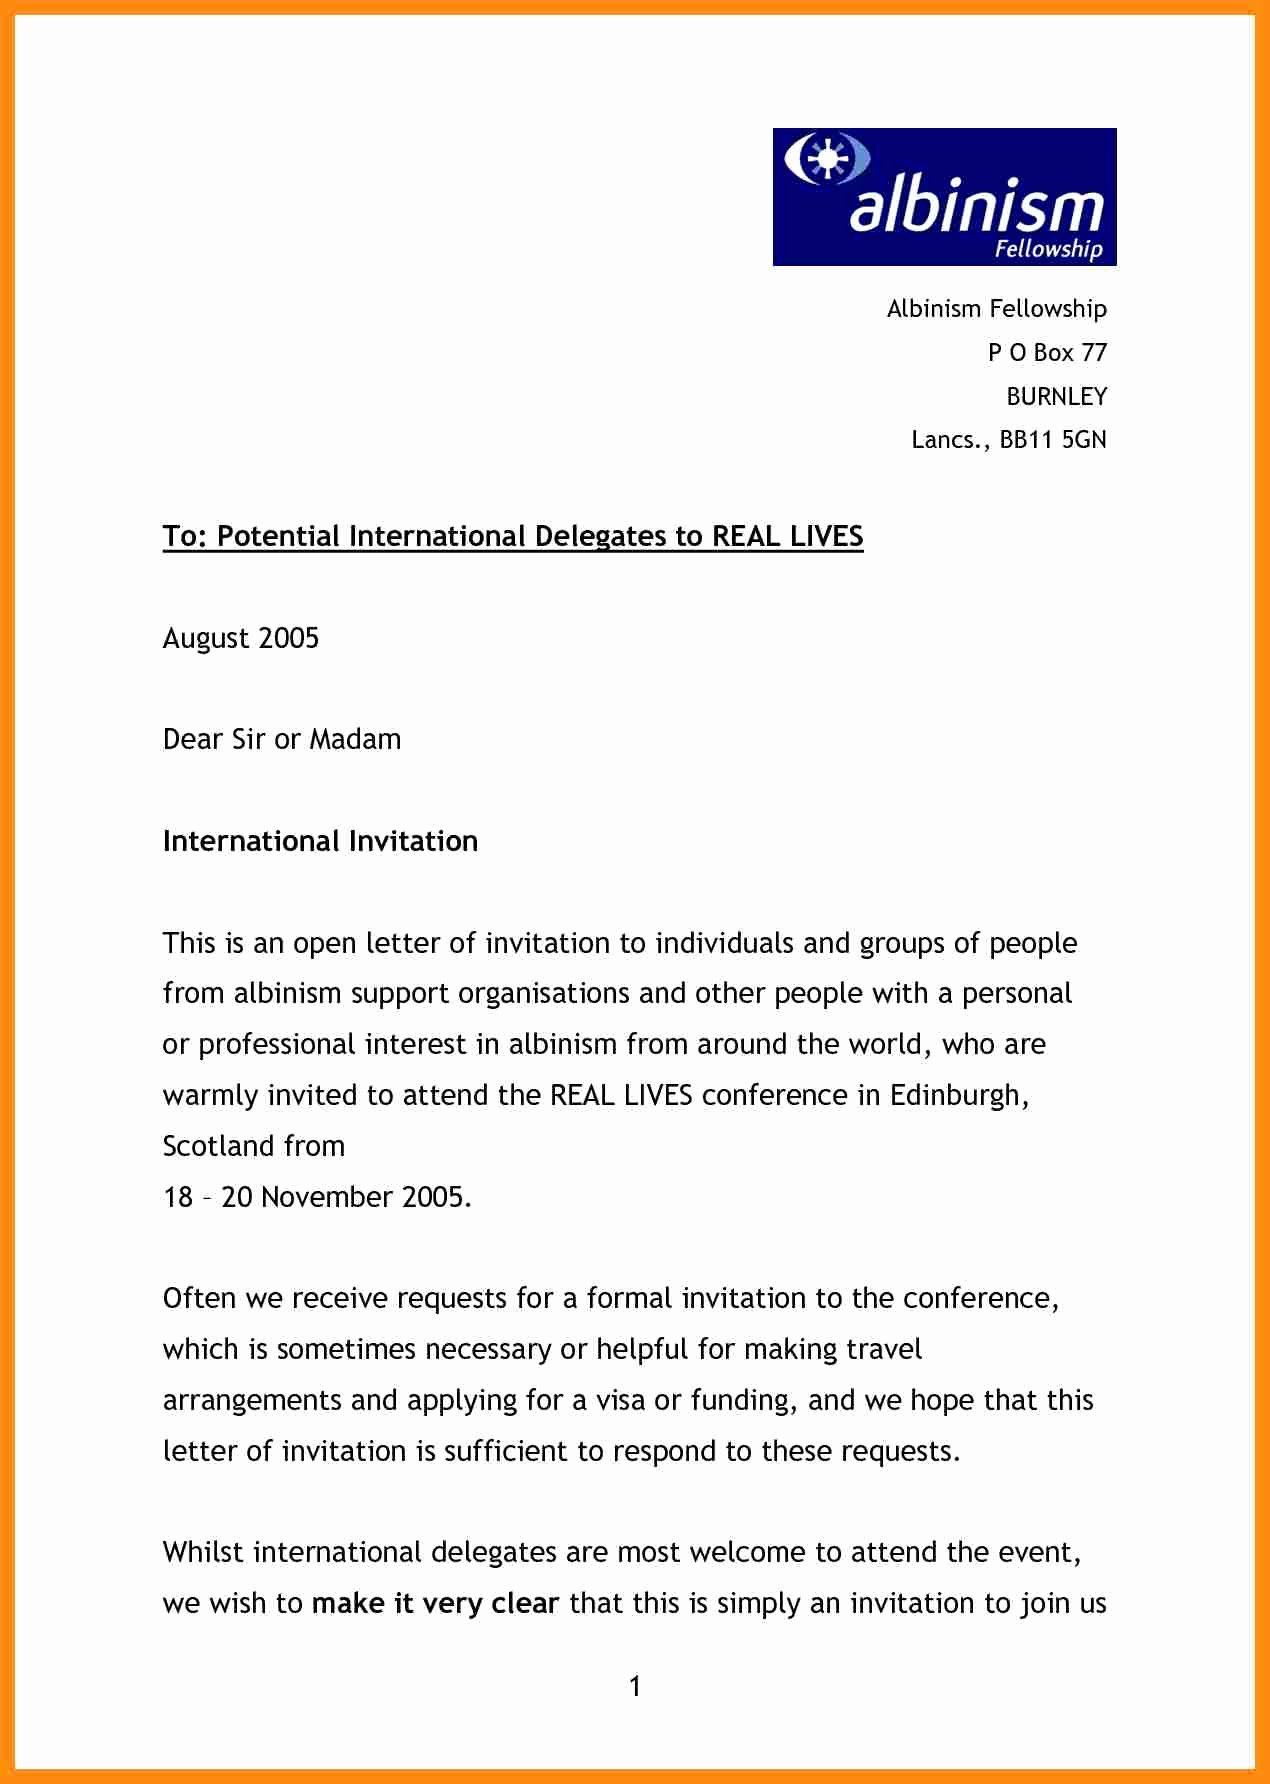 Event Invitation Email Template New event Invitation Email Sample Filename